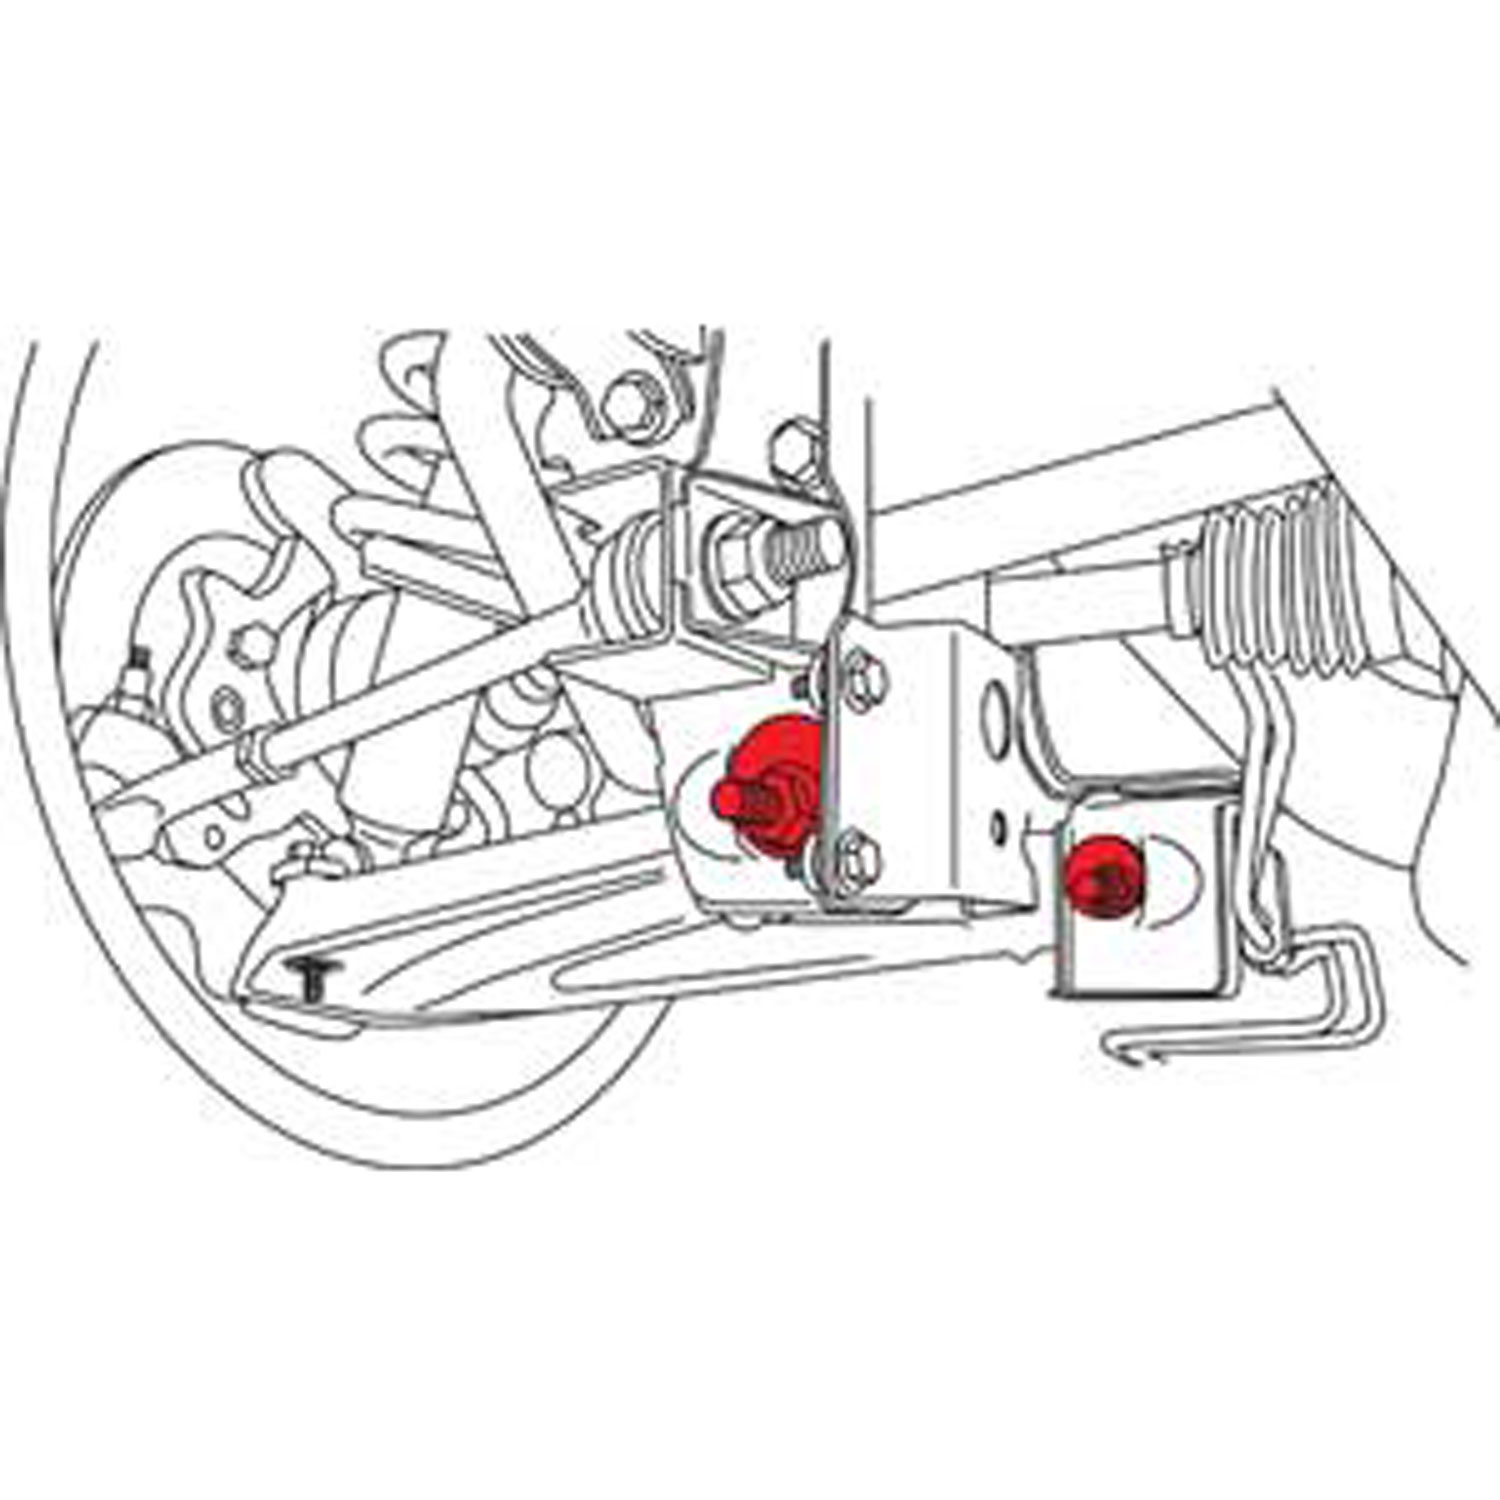 2007 mazda 3 serpentine belt diagram electrical panel wiring 2014 timing or chain imageresizertool com